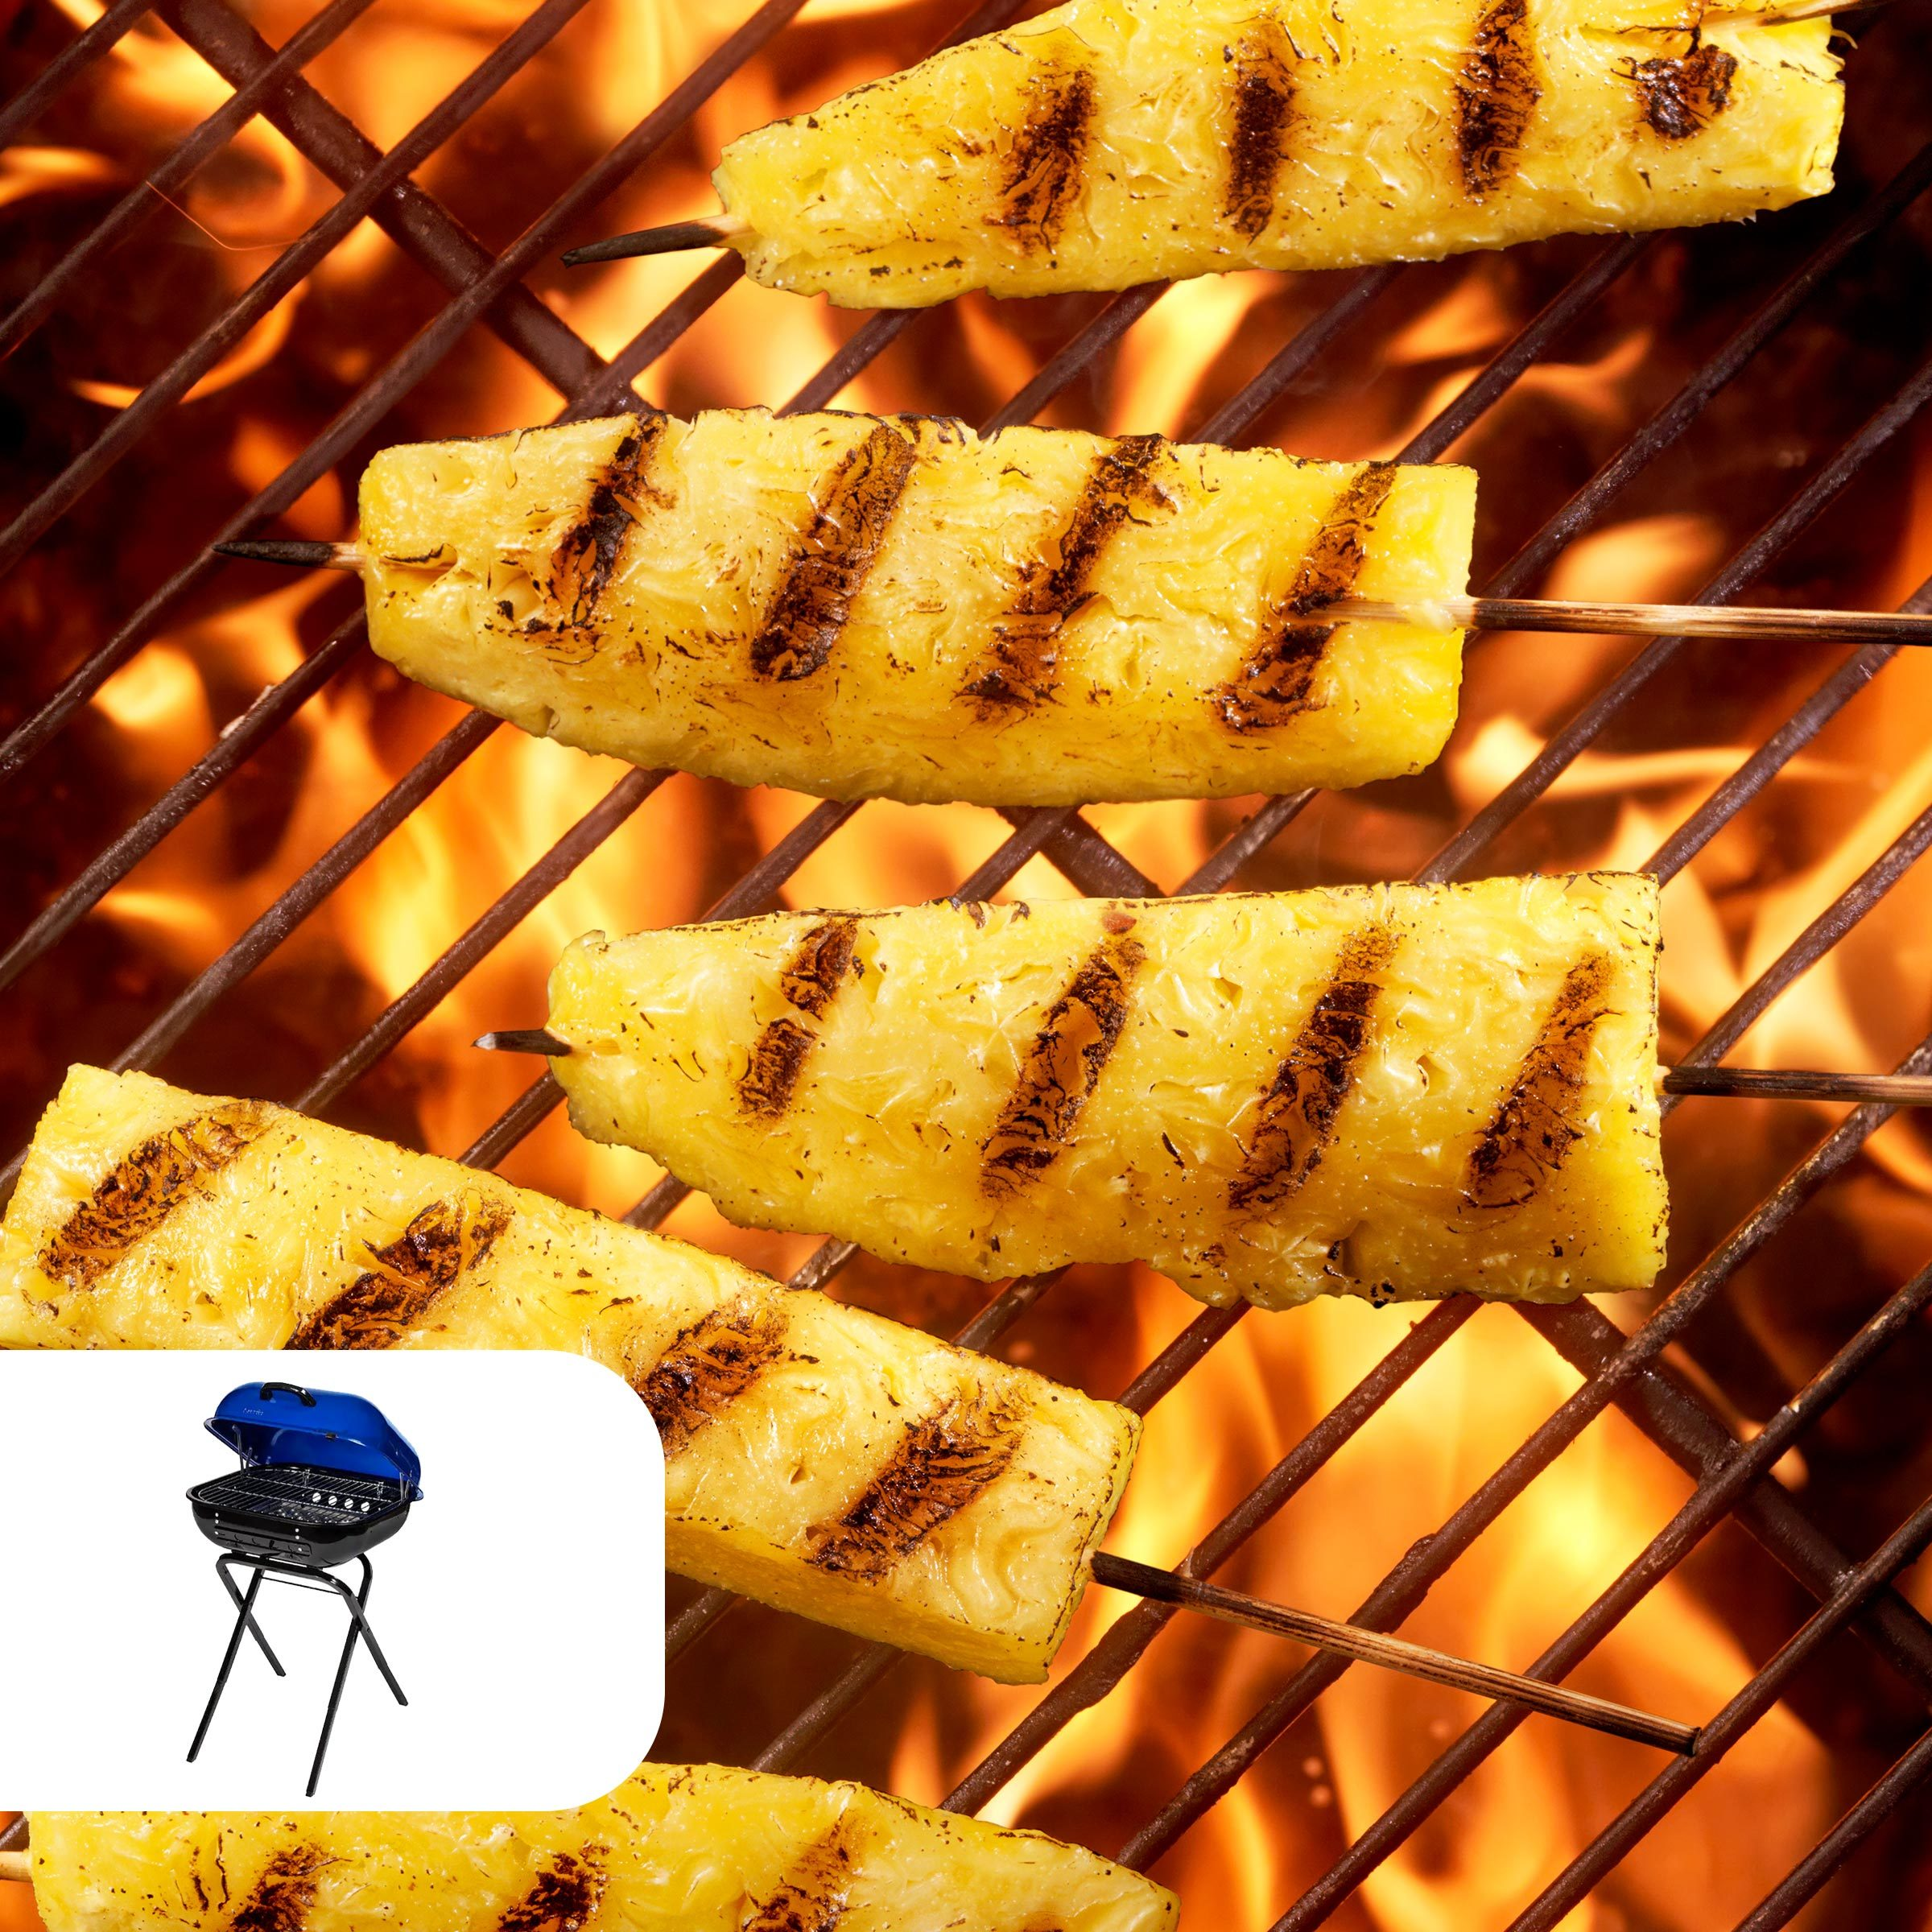 Grilled caramelized pineapple